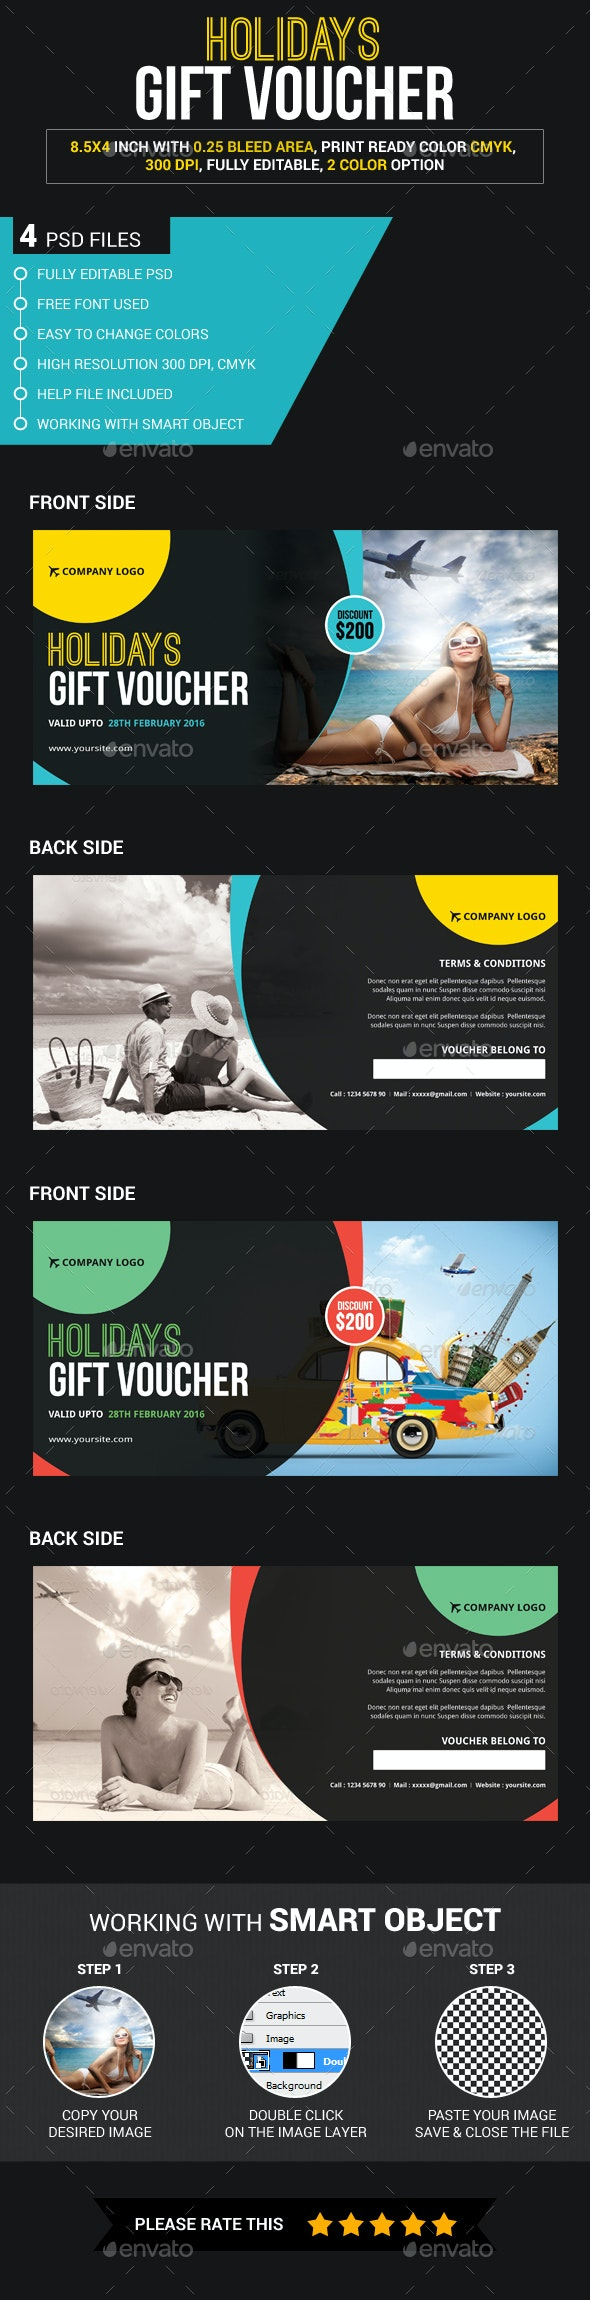 Travel Gift Voucher - Loyalty Cards Cards & Invites